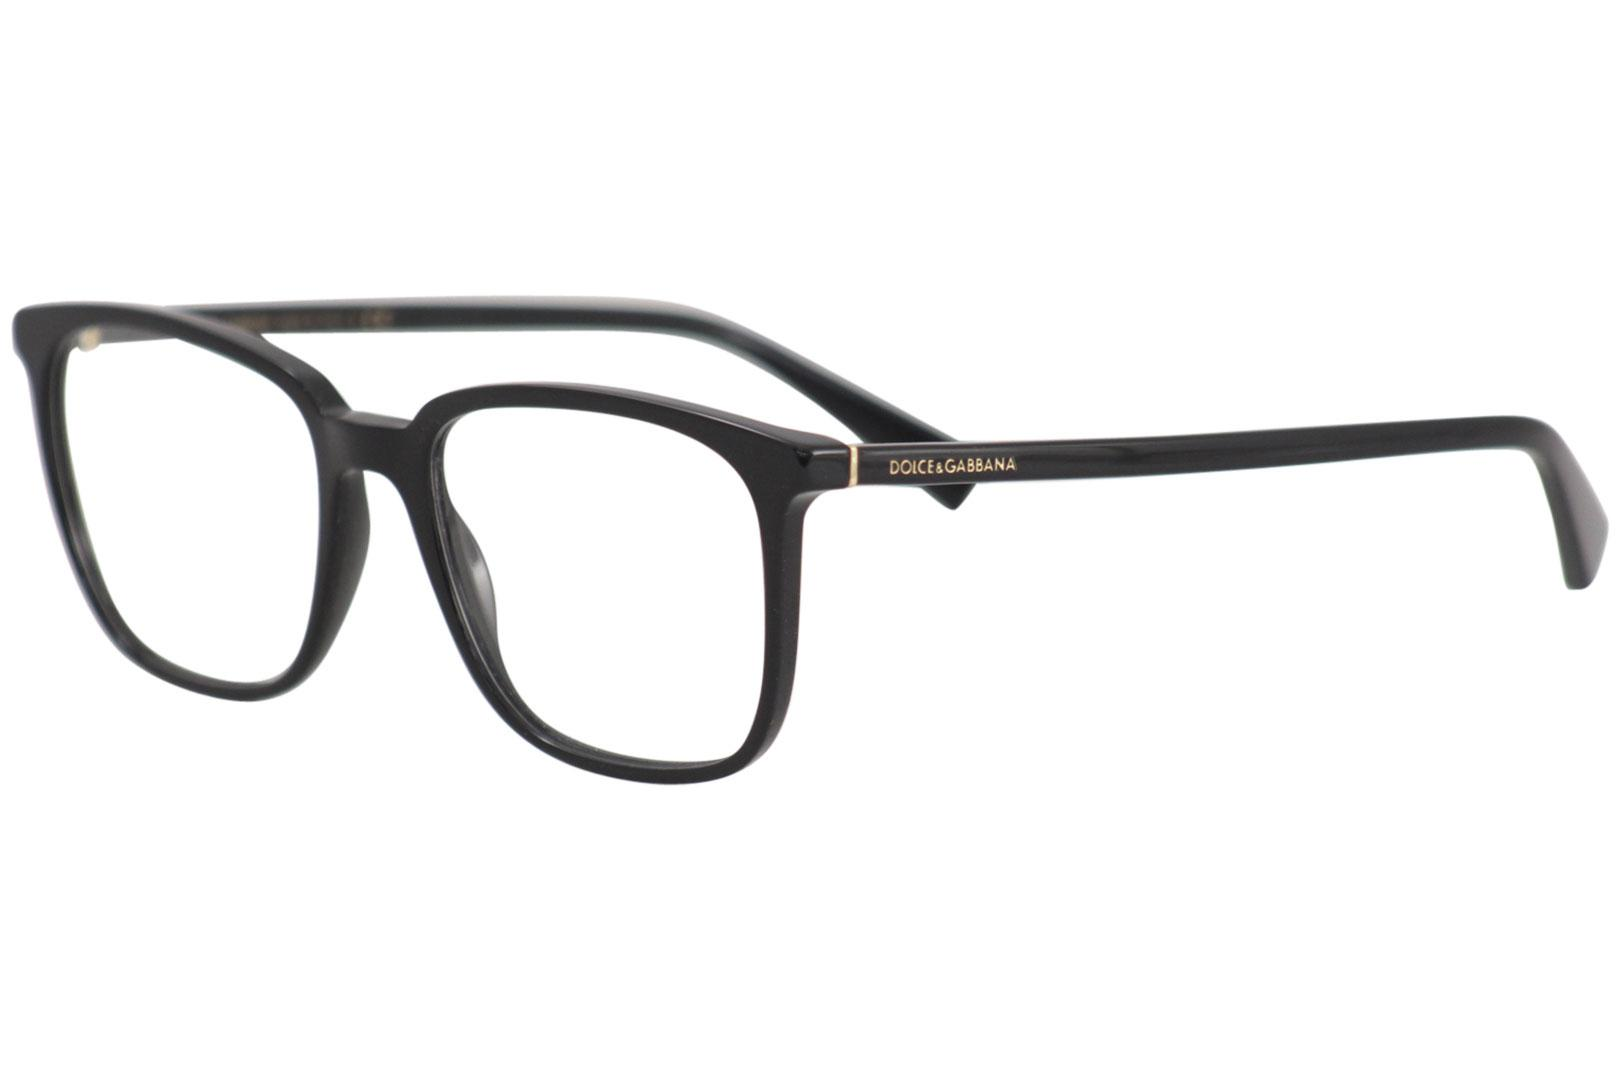 dd0f027dcfa Dolce   Gabbana Men s Eyeglasses D G DG3298 DG 3298 Full Rim Optical Frame